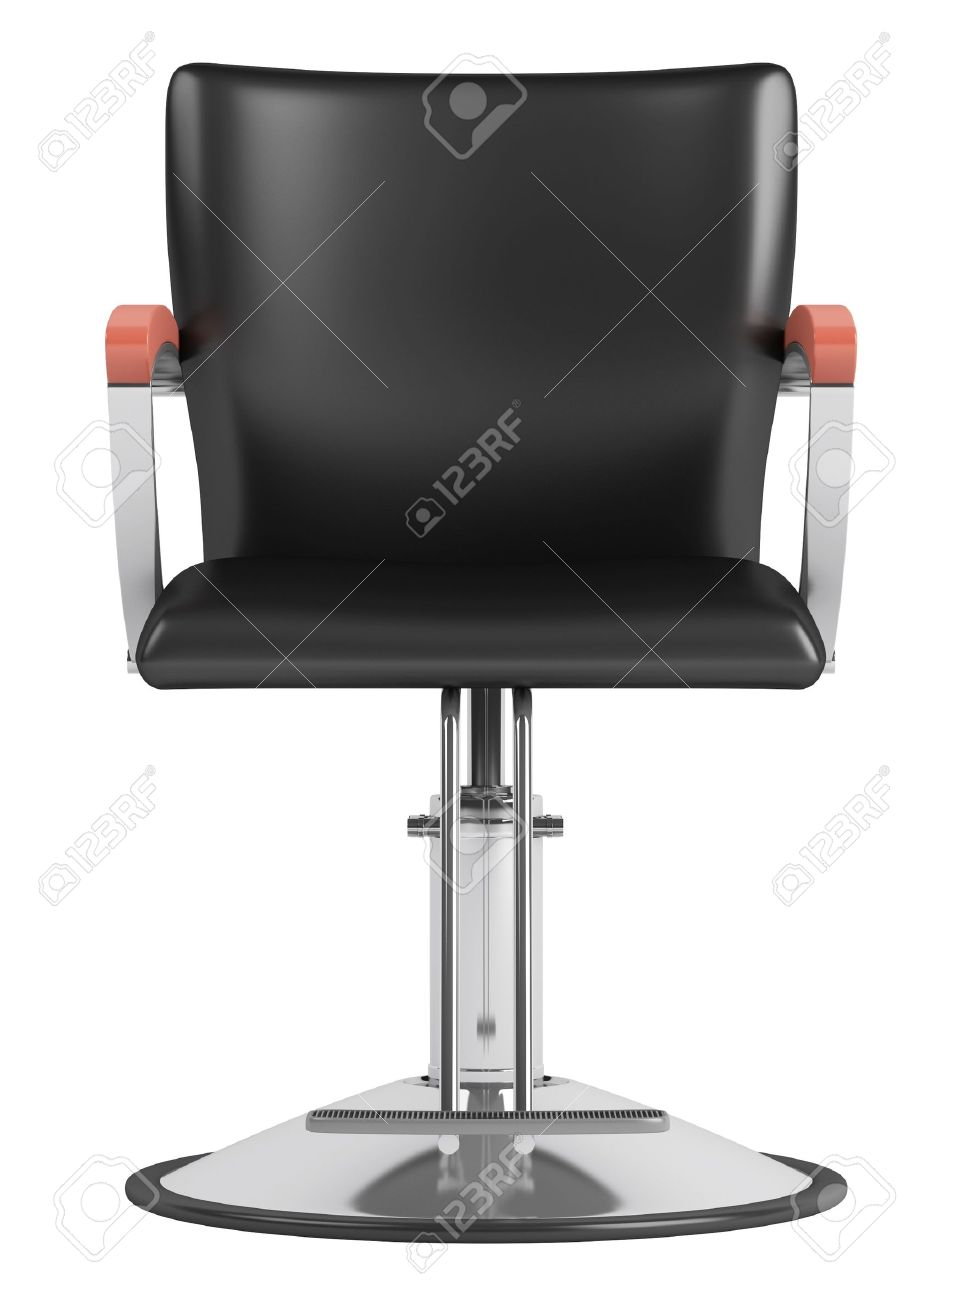 Black salon chairs - Barber Chair Black Hairdressing Salon Chair Isolated On White Background